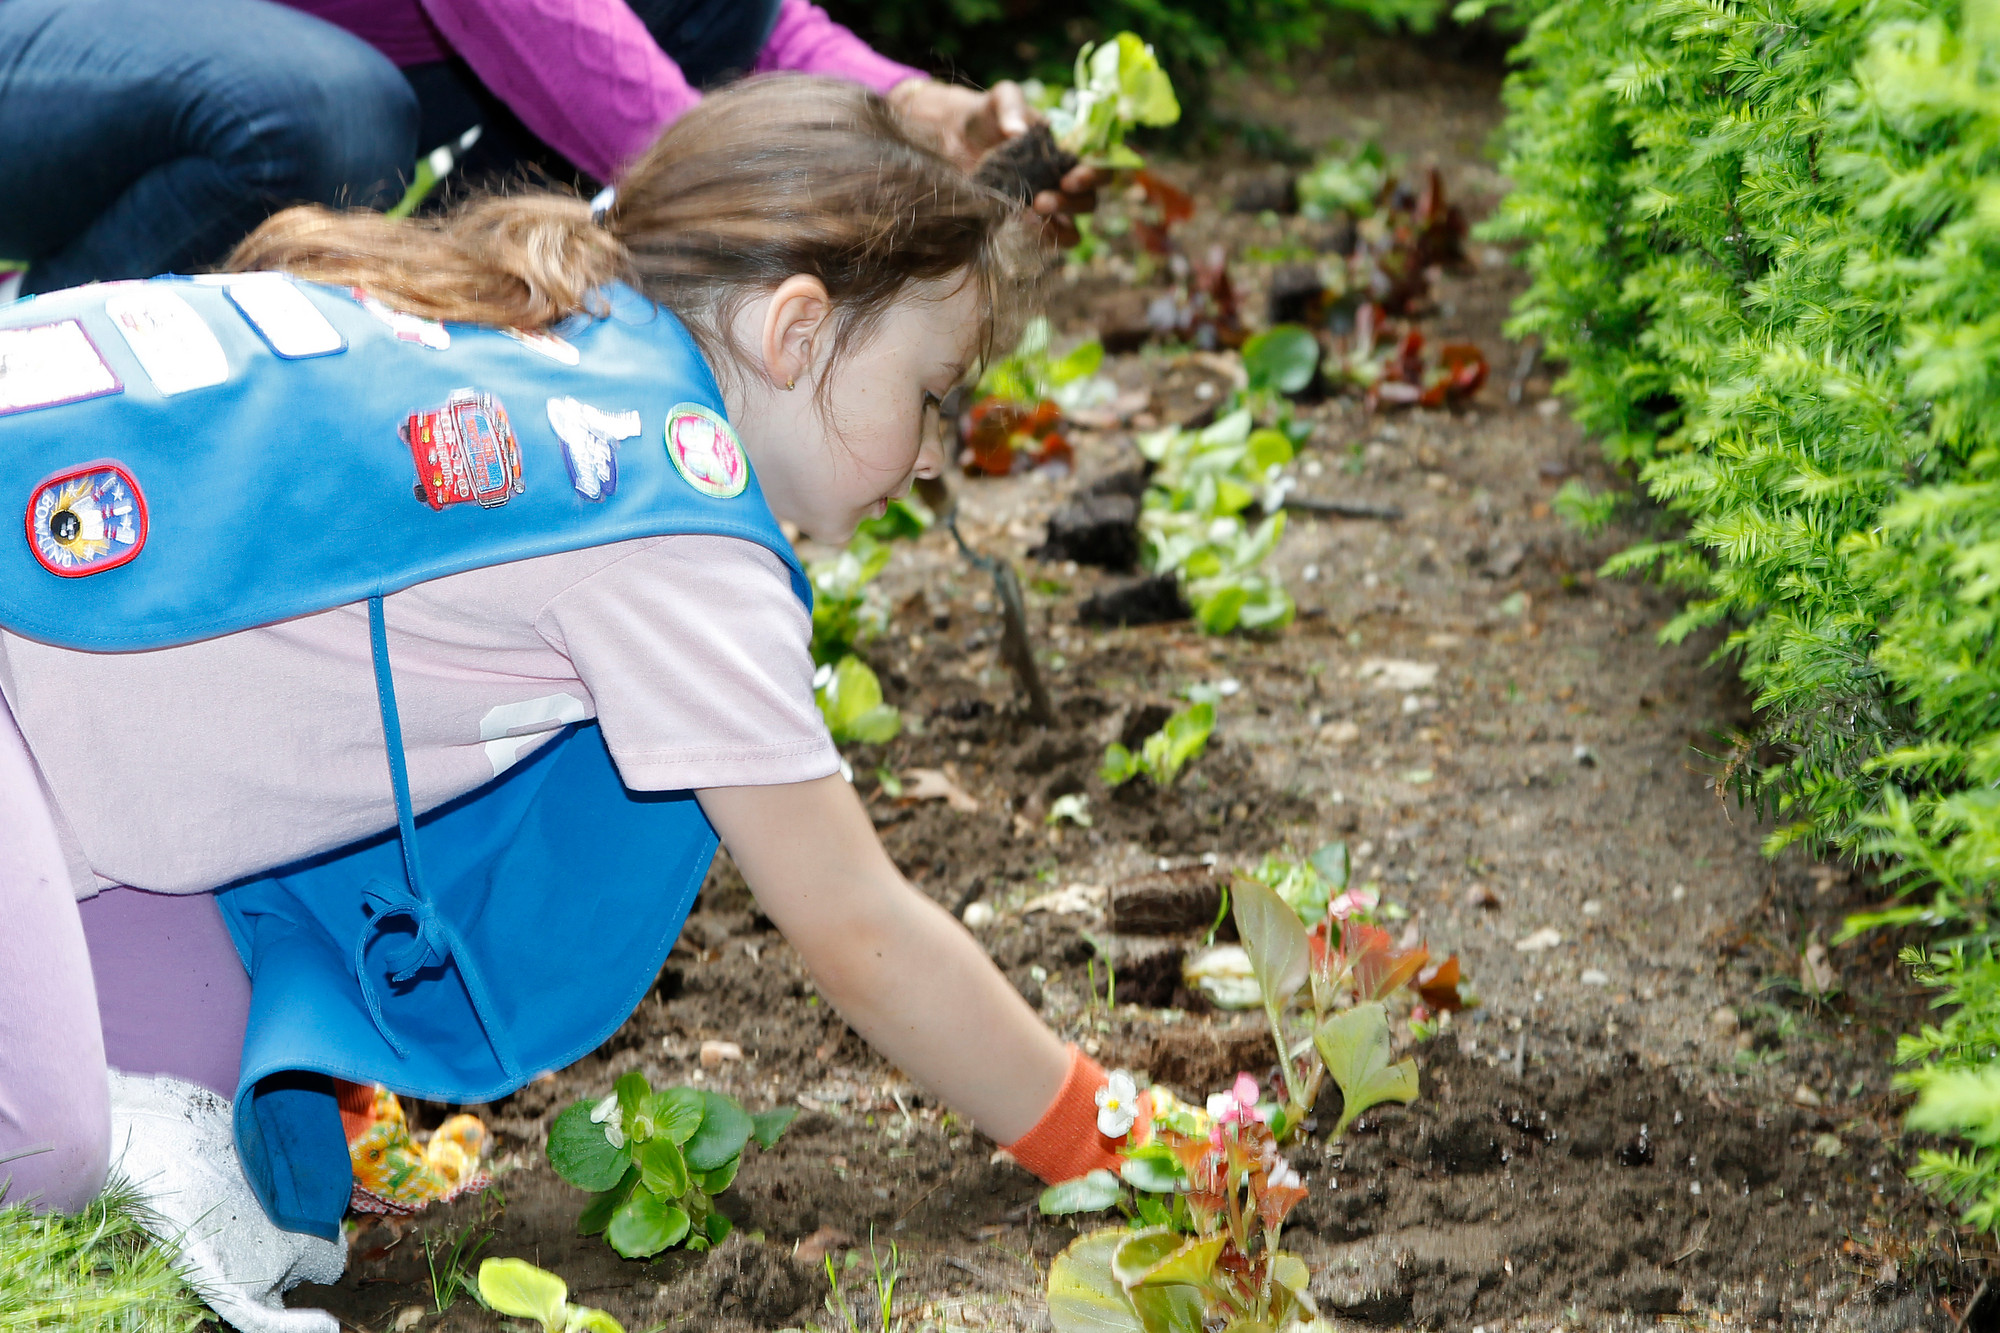 Six-year-old Katie Dolan, a Daisy in Troop 813, planted many flowers.